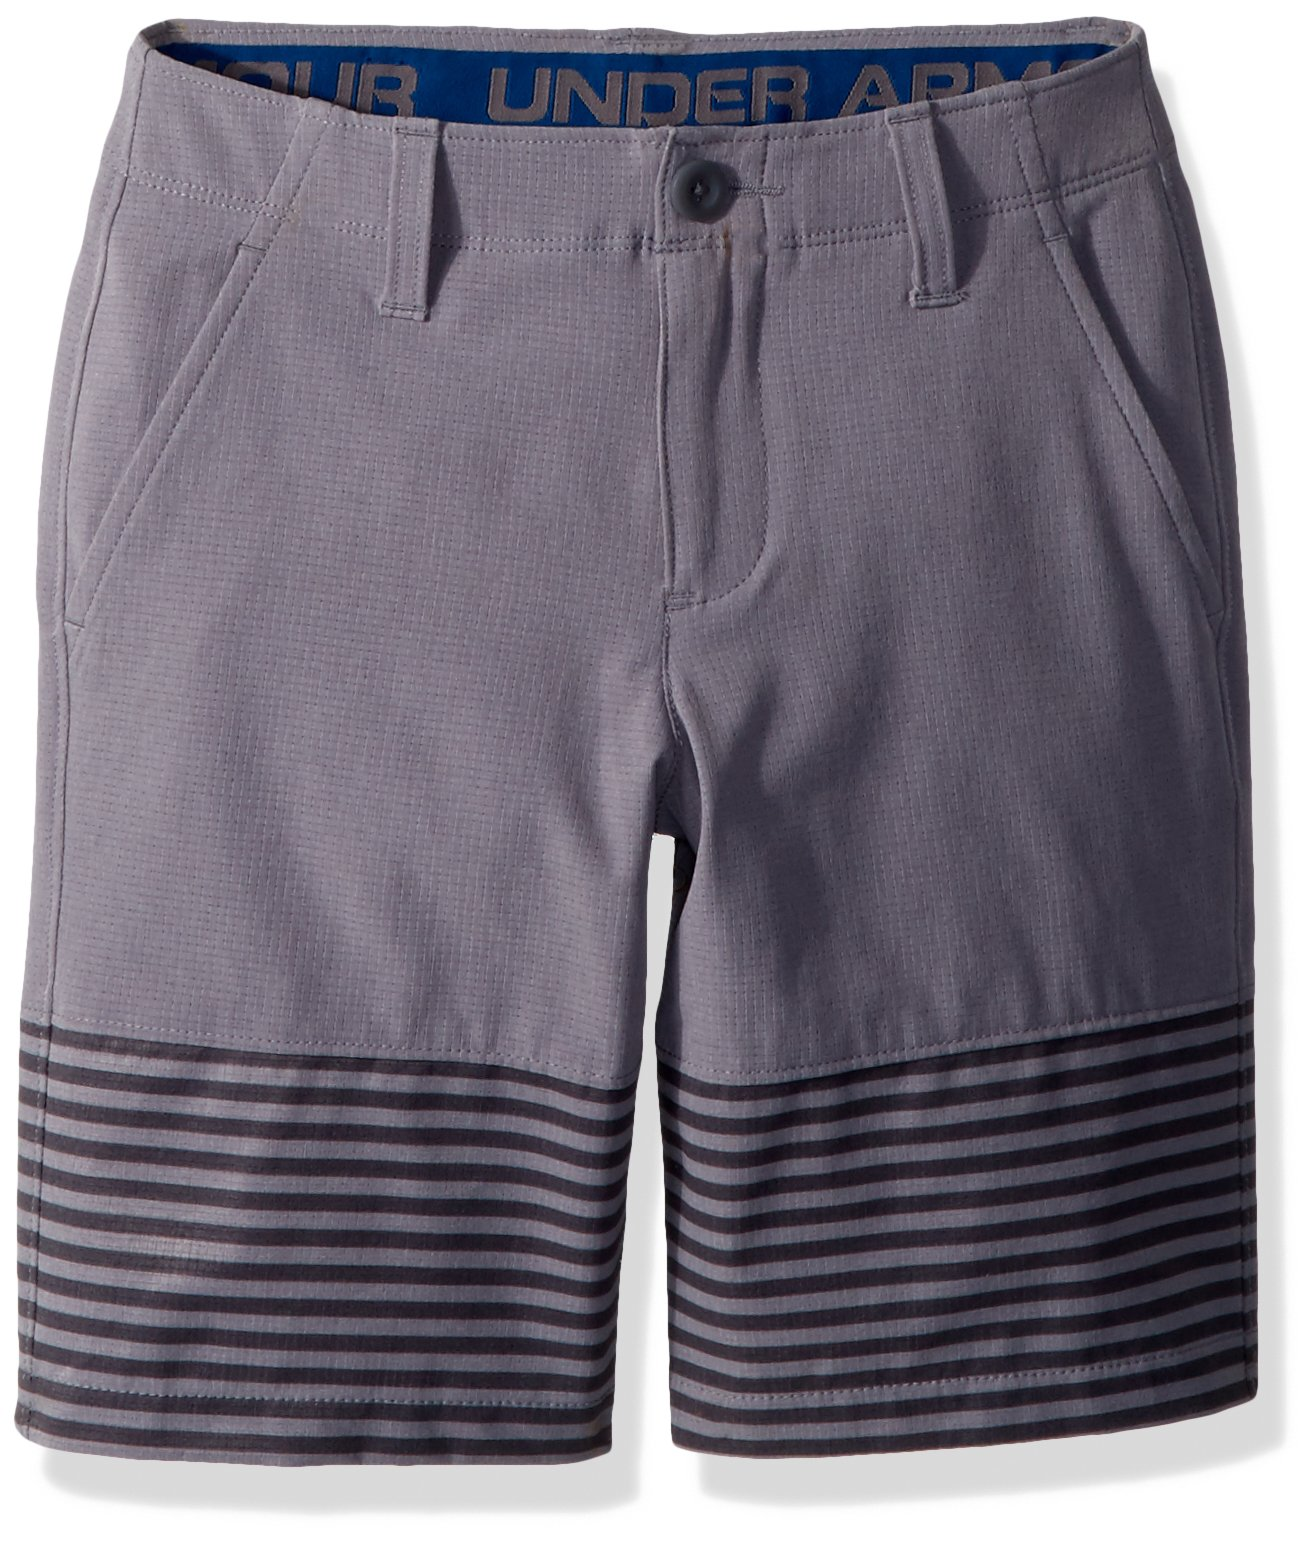 Under Armour Boys' Match Play Vented Shorts, Zinc Gray (513)/Zinc Gray, 6